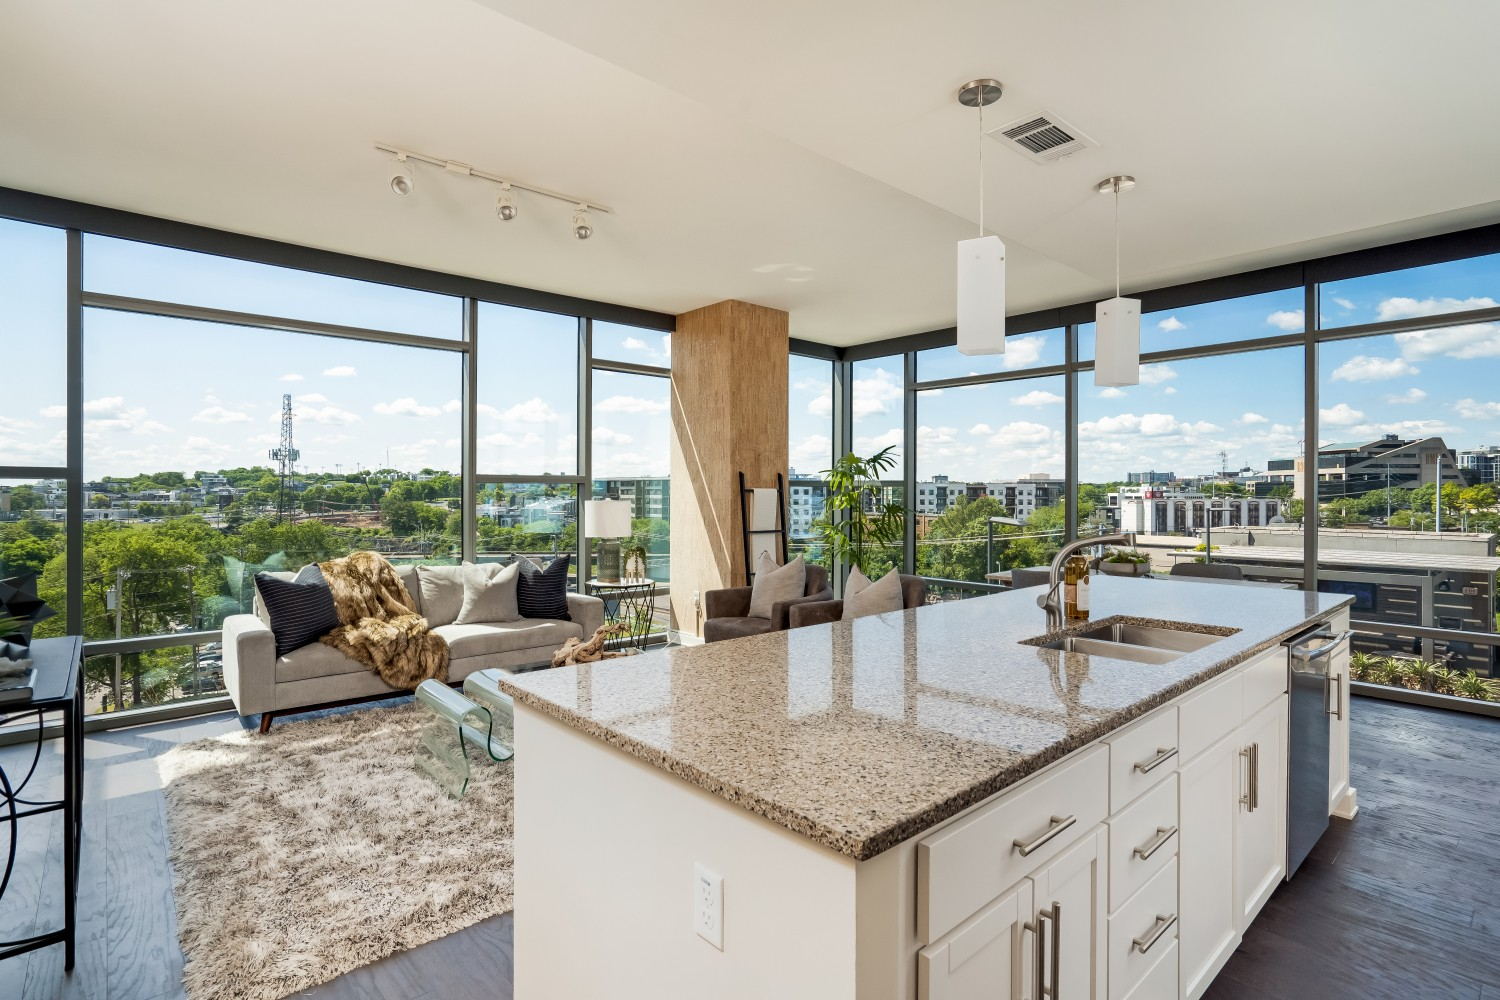 A must see! Panoramic Gulch & Midtown views! 2BD|2BA corner unit. Open layout living room & kitchen with huge center island, quartz counters, & stainless steel appliances! 12|12 features 2 guest suites, salt-water pool, hot tub, green roof, trainer driven fitness center, dog park, & 2 owner lounges.